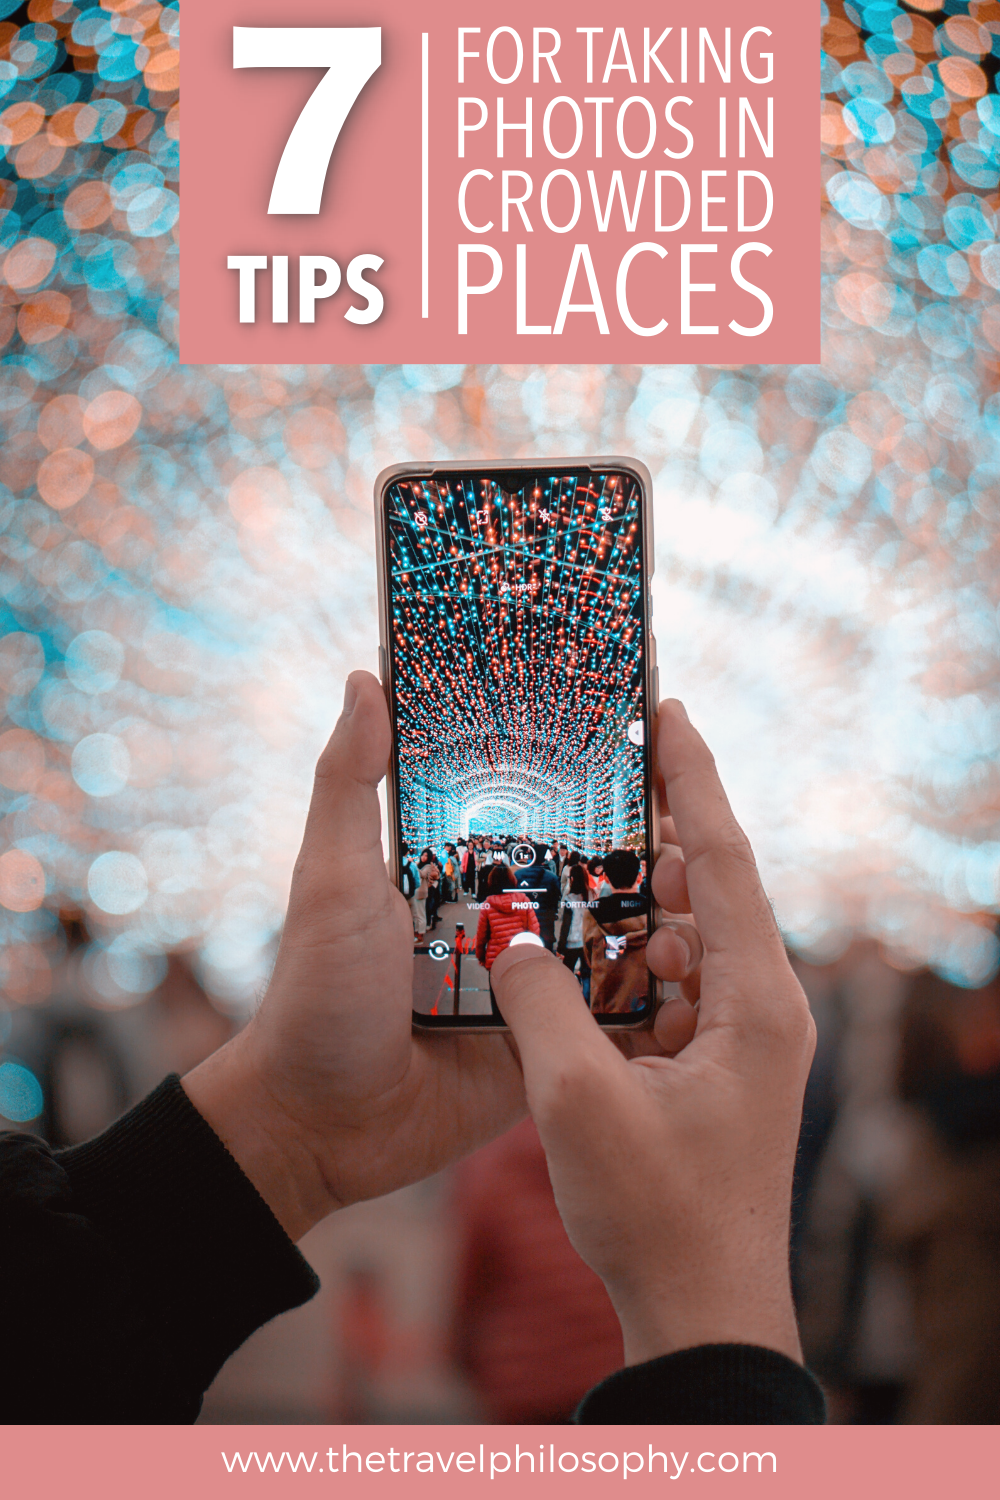 7 Tips for Taking Photos in Crowded Places